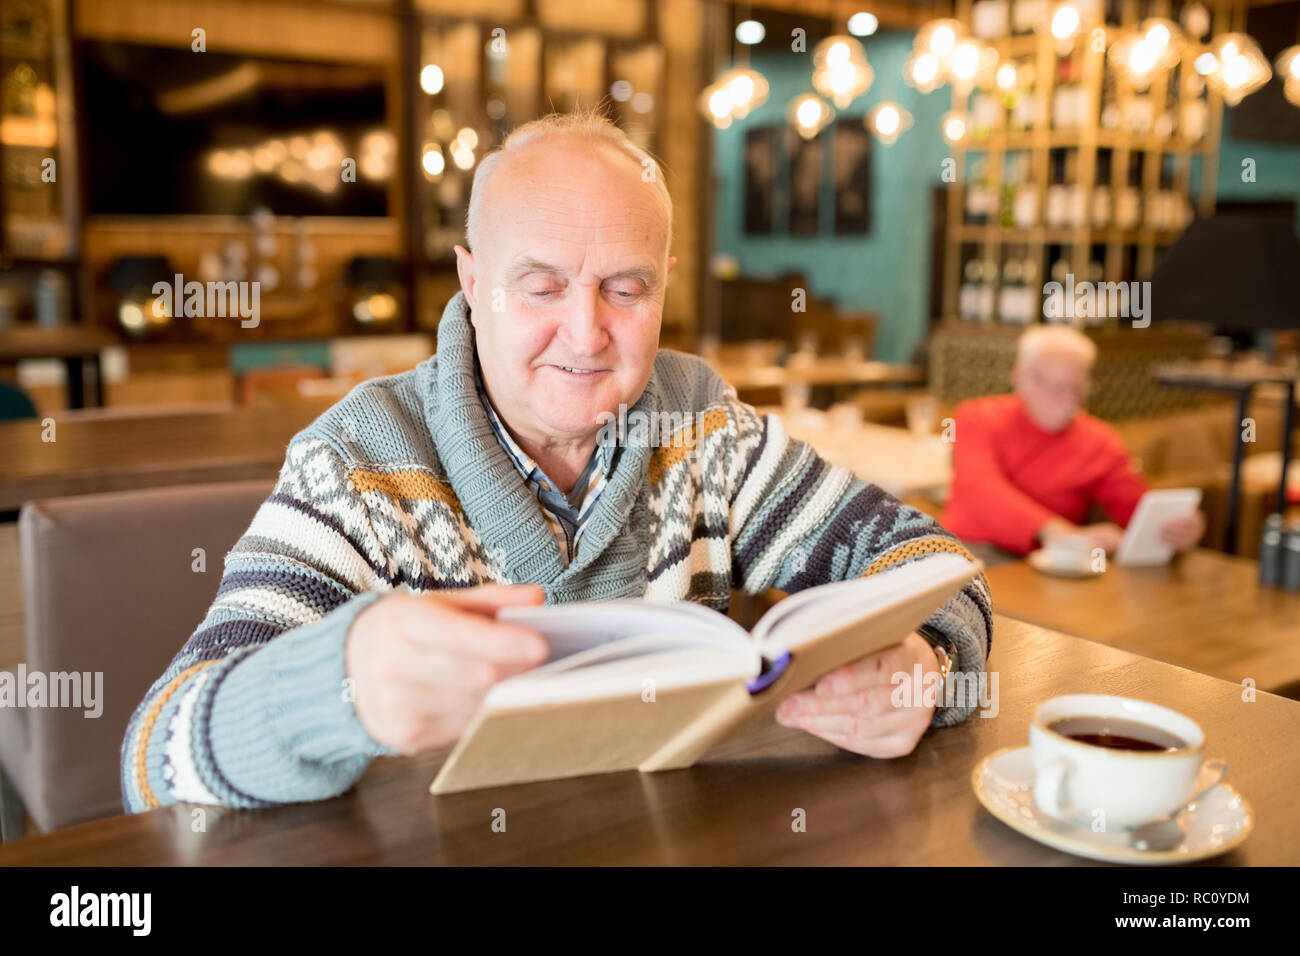 Curious chubby man reading interesting book in cafe - Stock Image